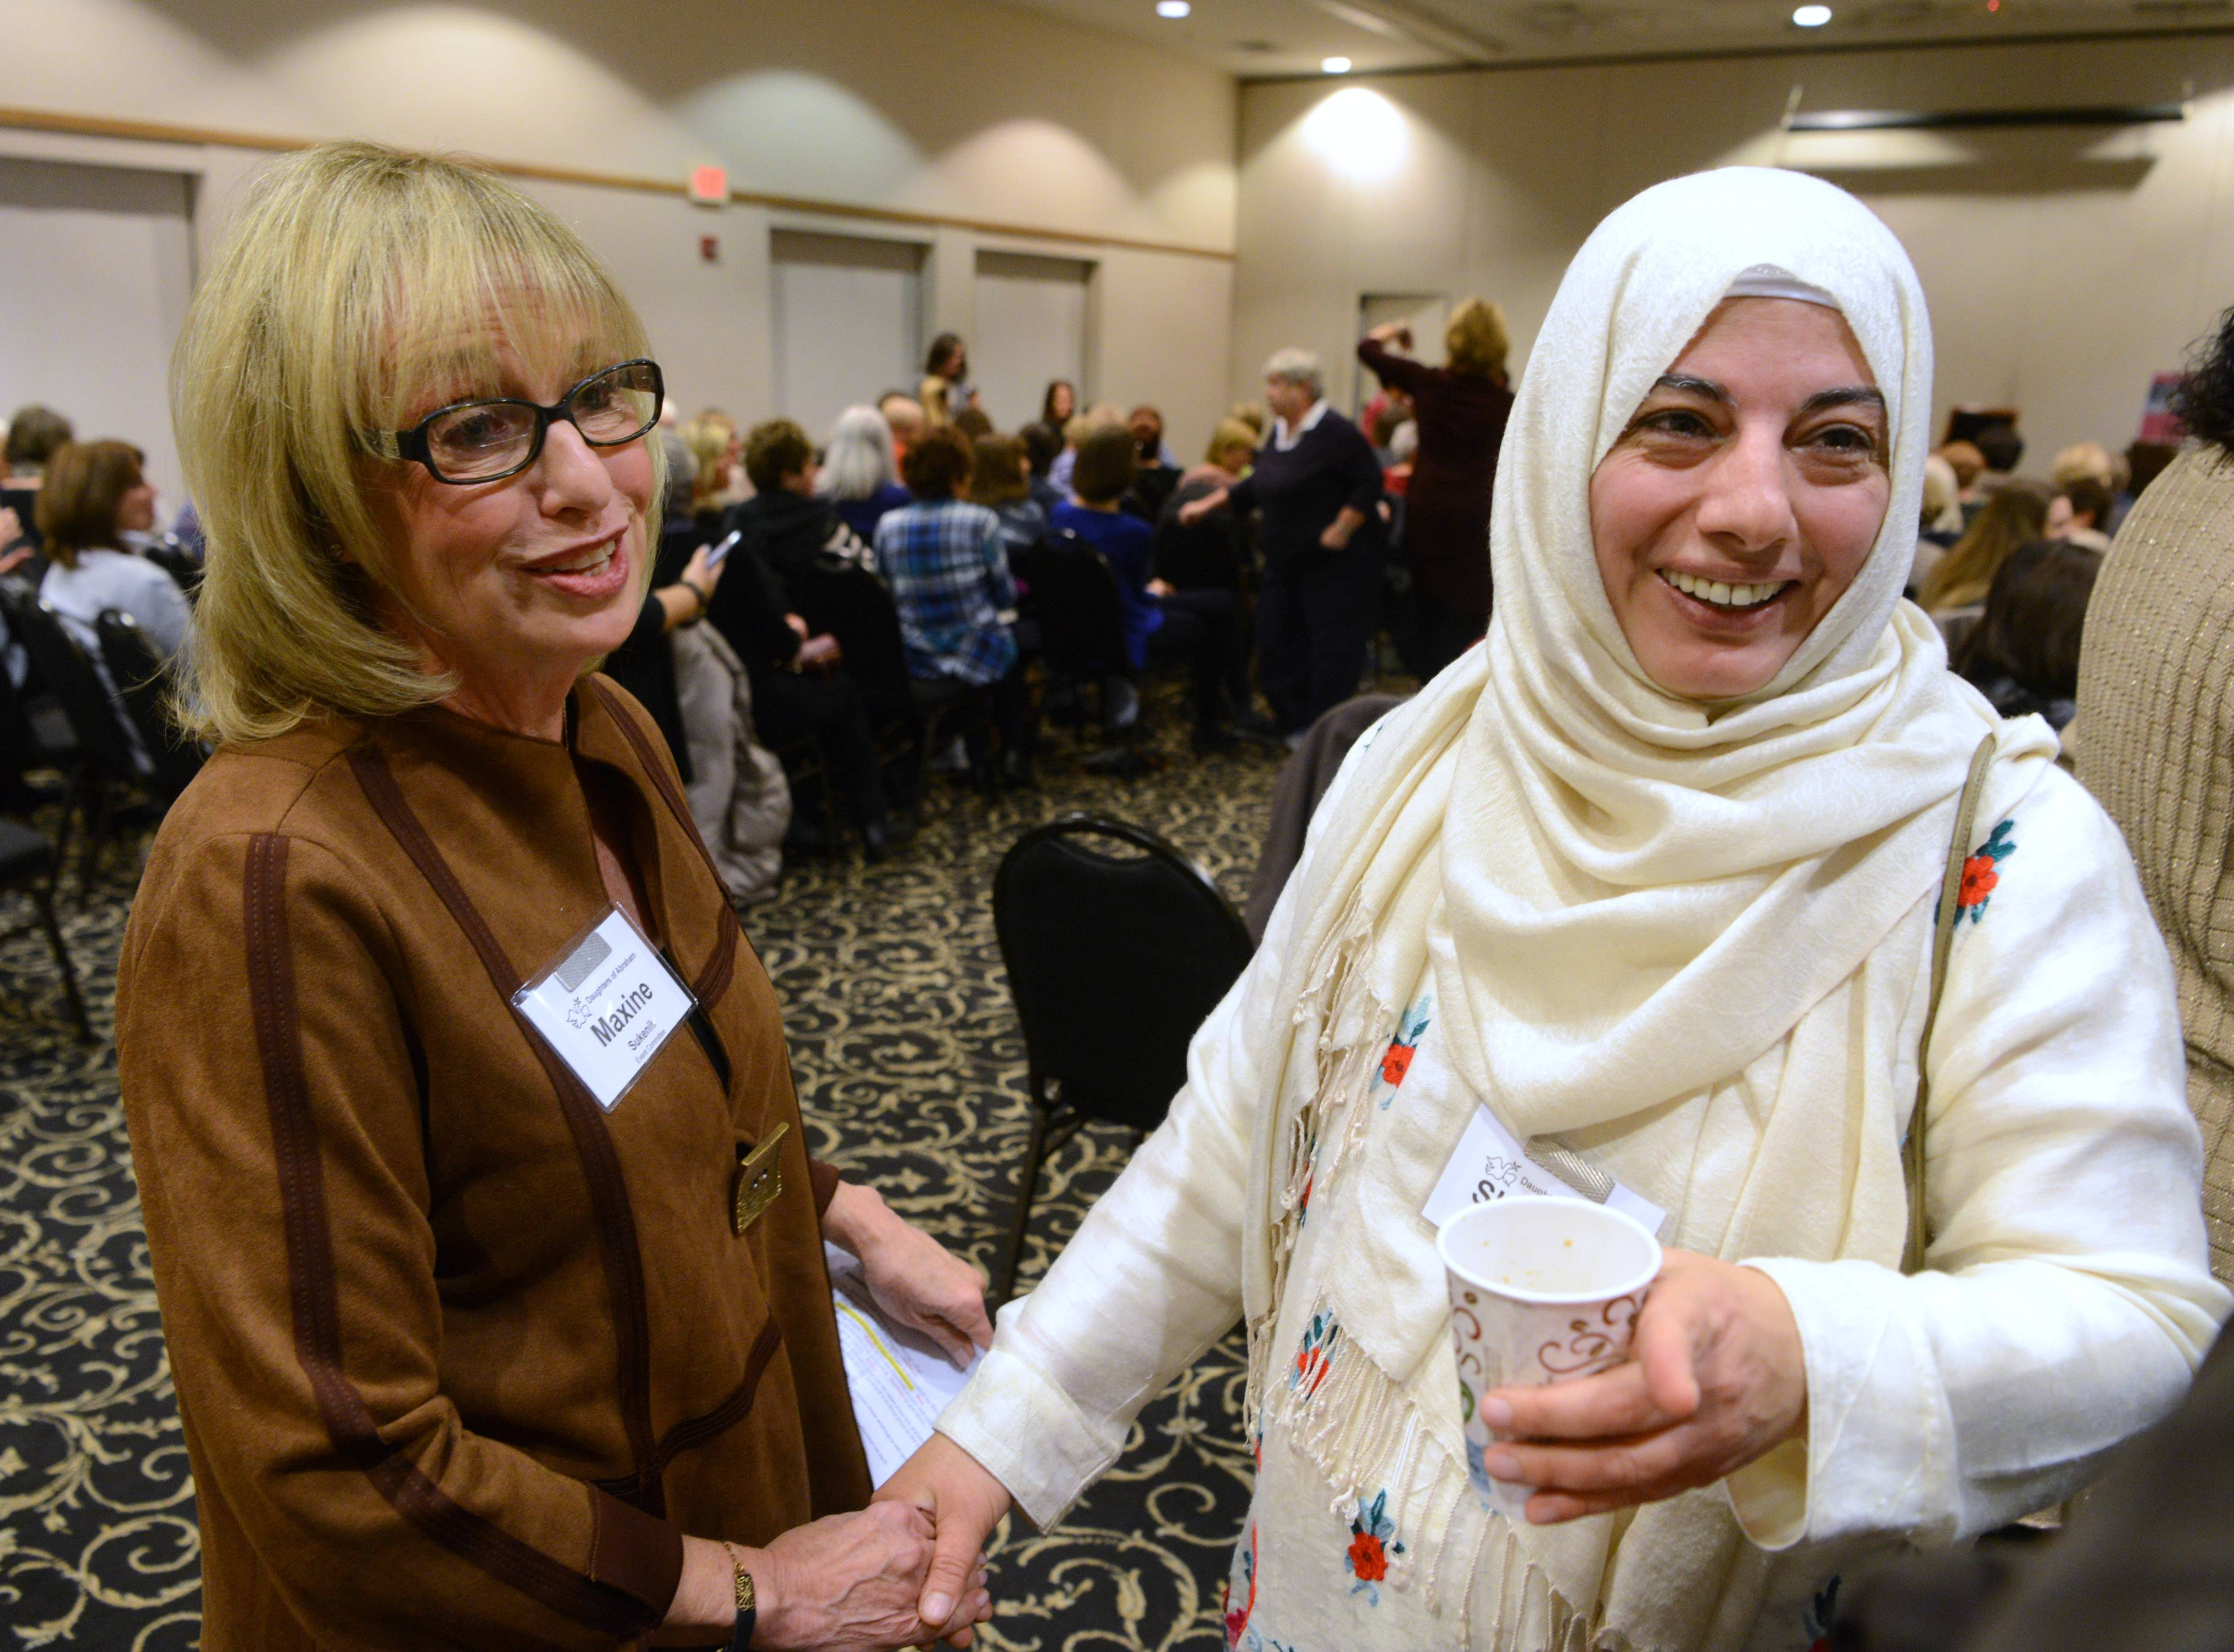 Maxine Sukenik, left, of Lincolnshire and Shaheen Khan of Wheeling greet one another at a gathering of the newly-formed interfaith group Daughters of Abraham at Temple Chai in Long Grove.